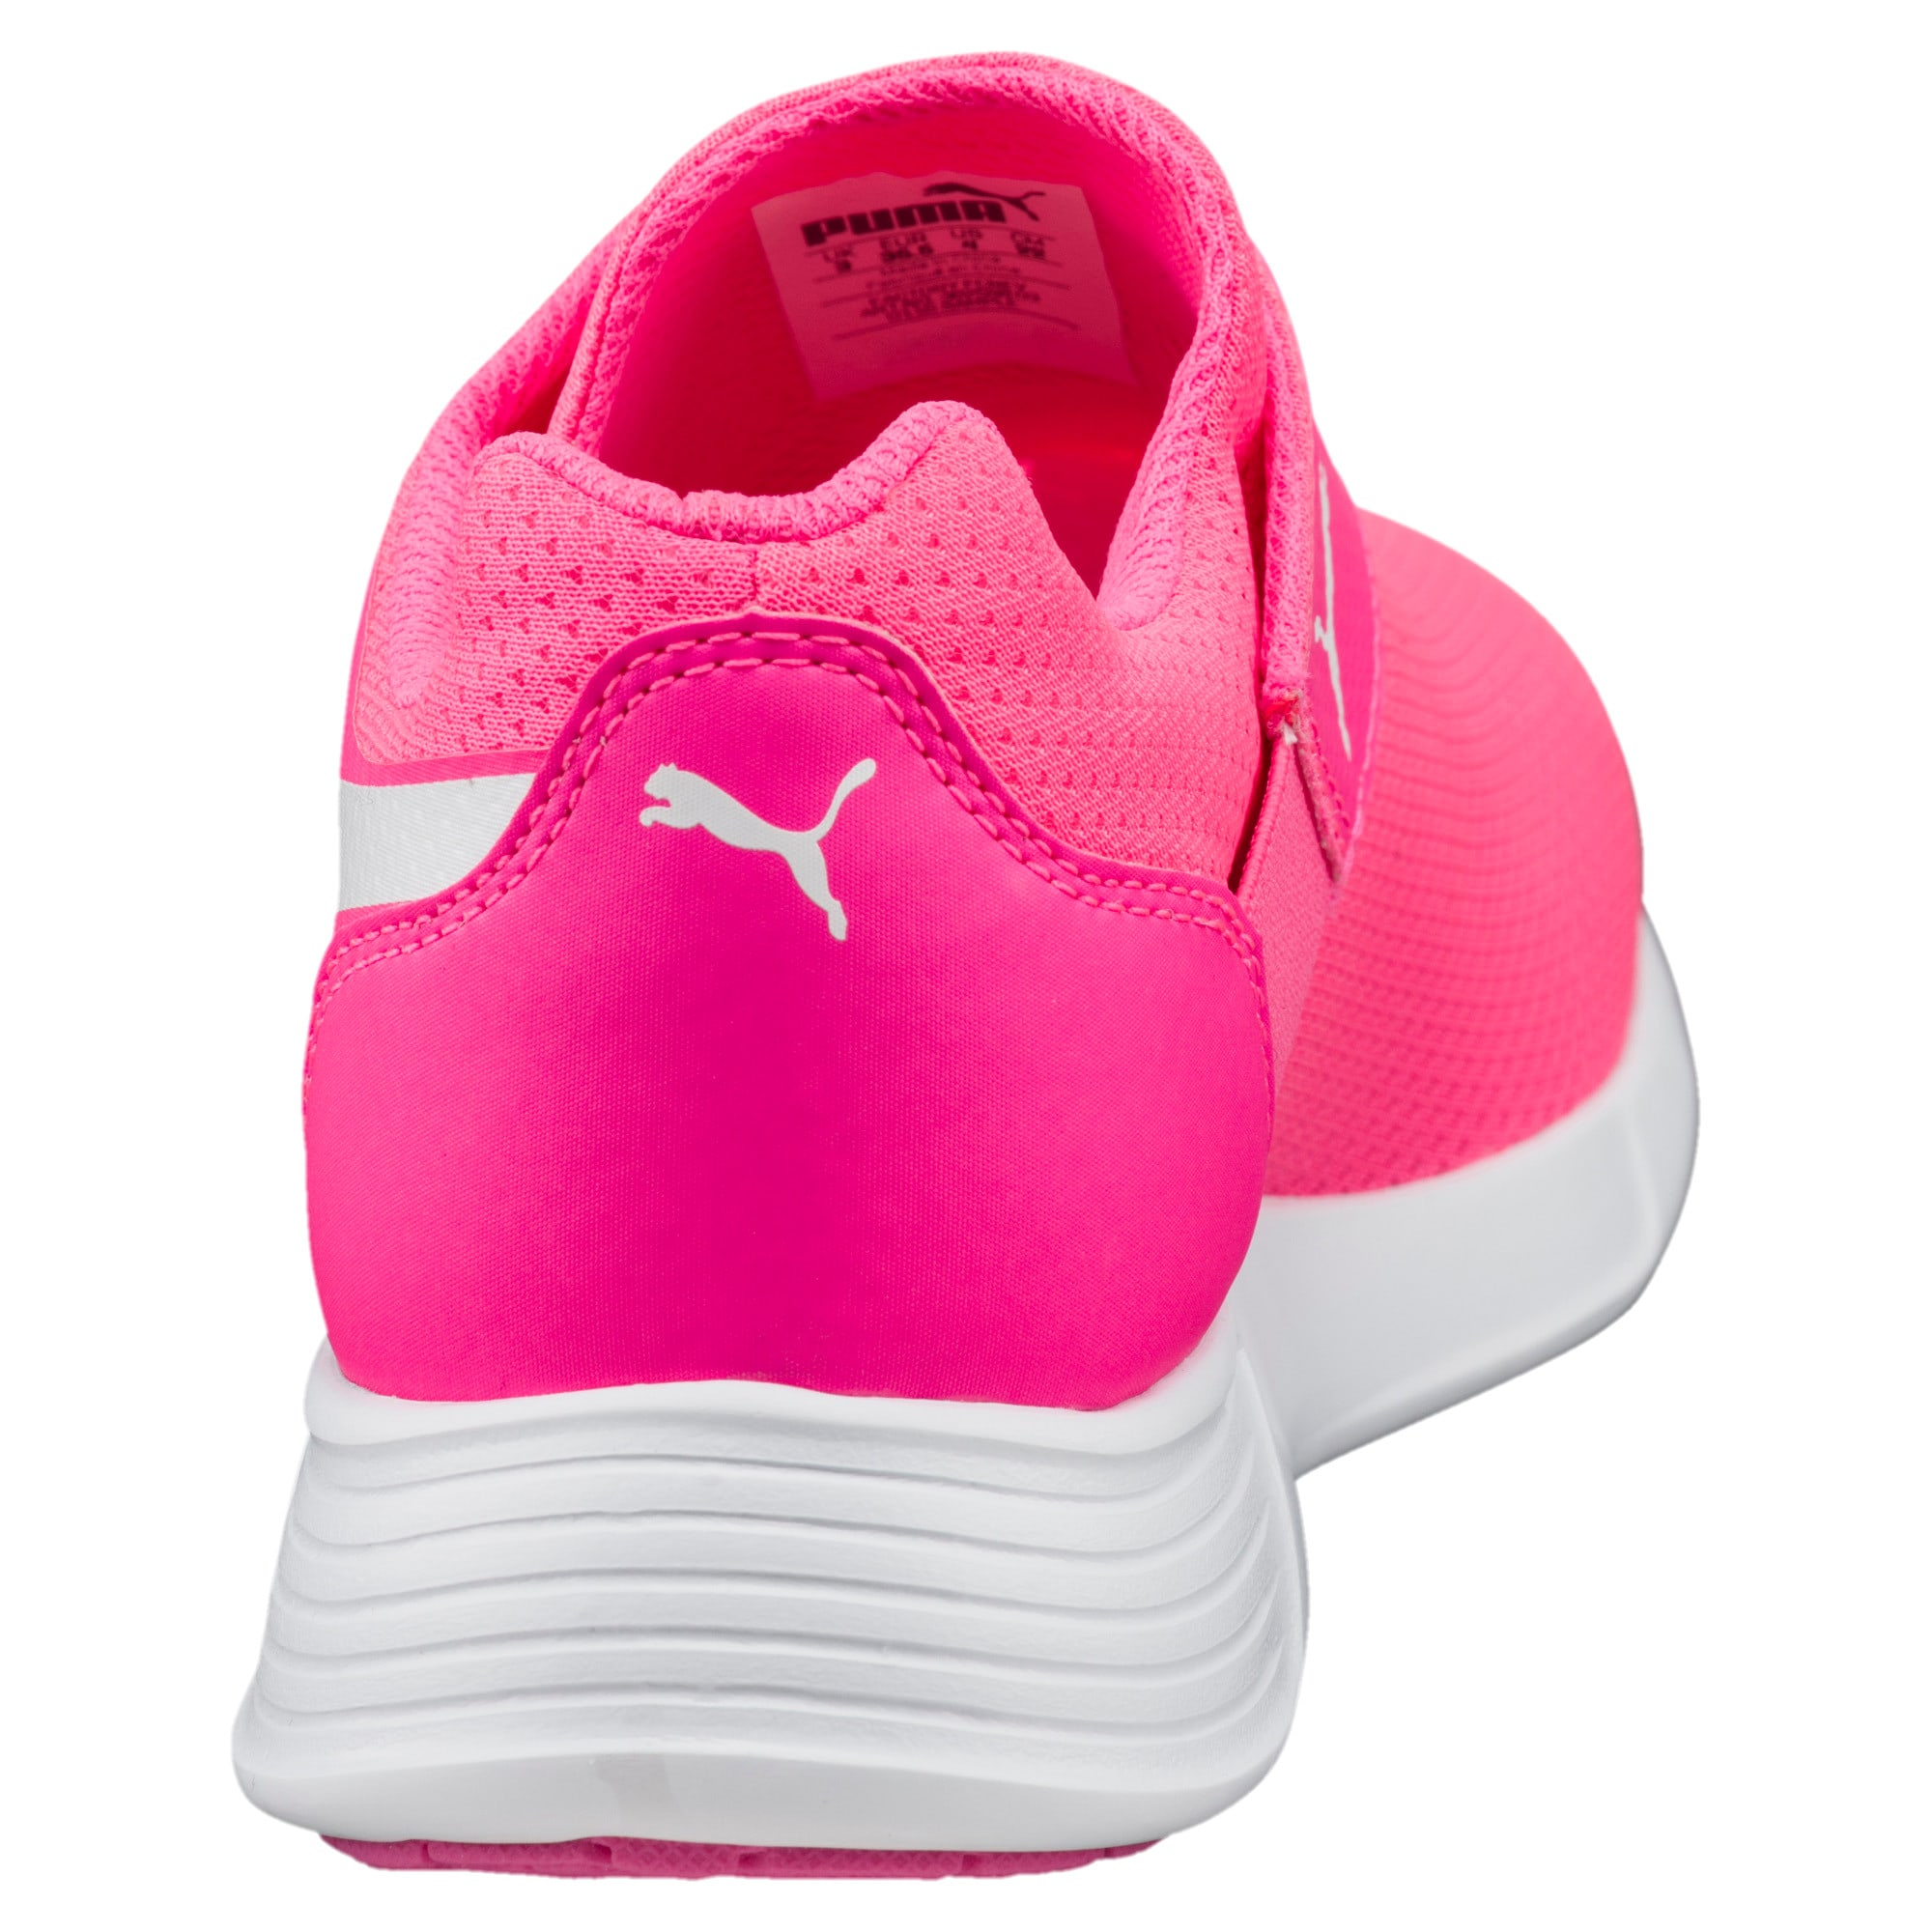 Thumbnail 3 of ST Trainer Evo AC Kids' Trainers, KNOCKOUT PINK-Puma White, medium-IND